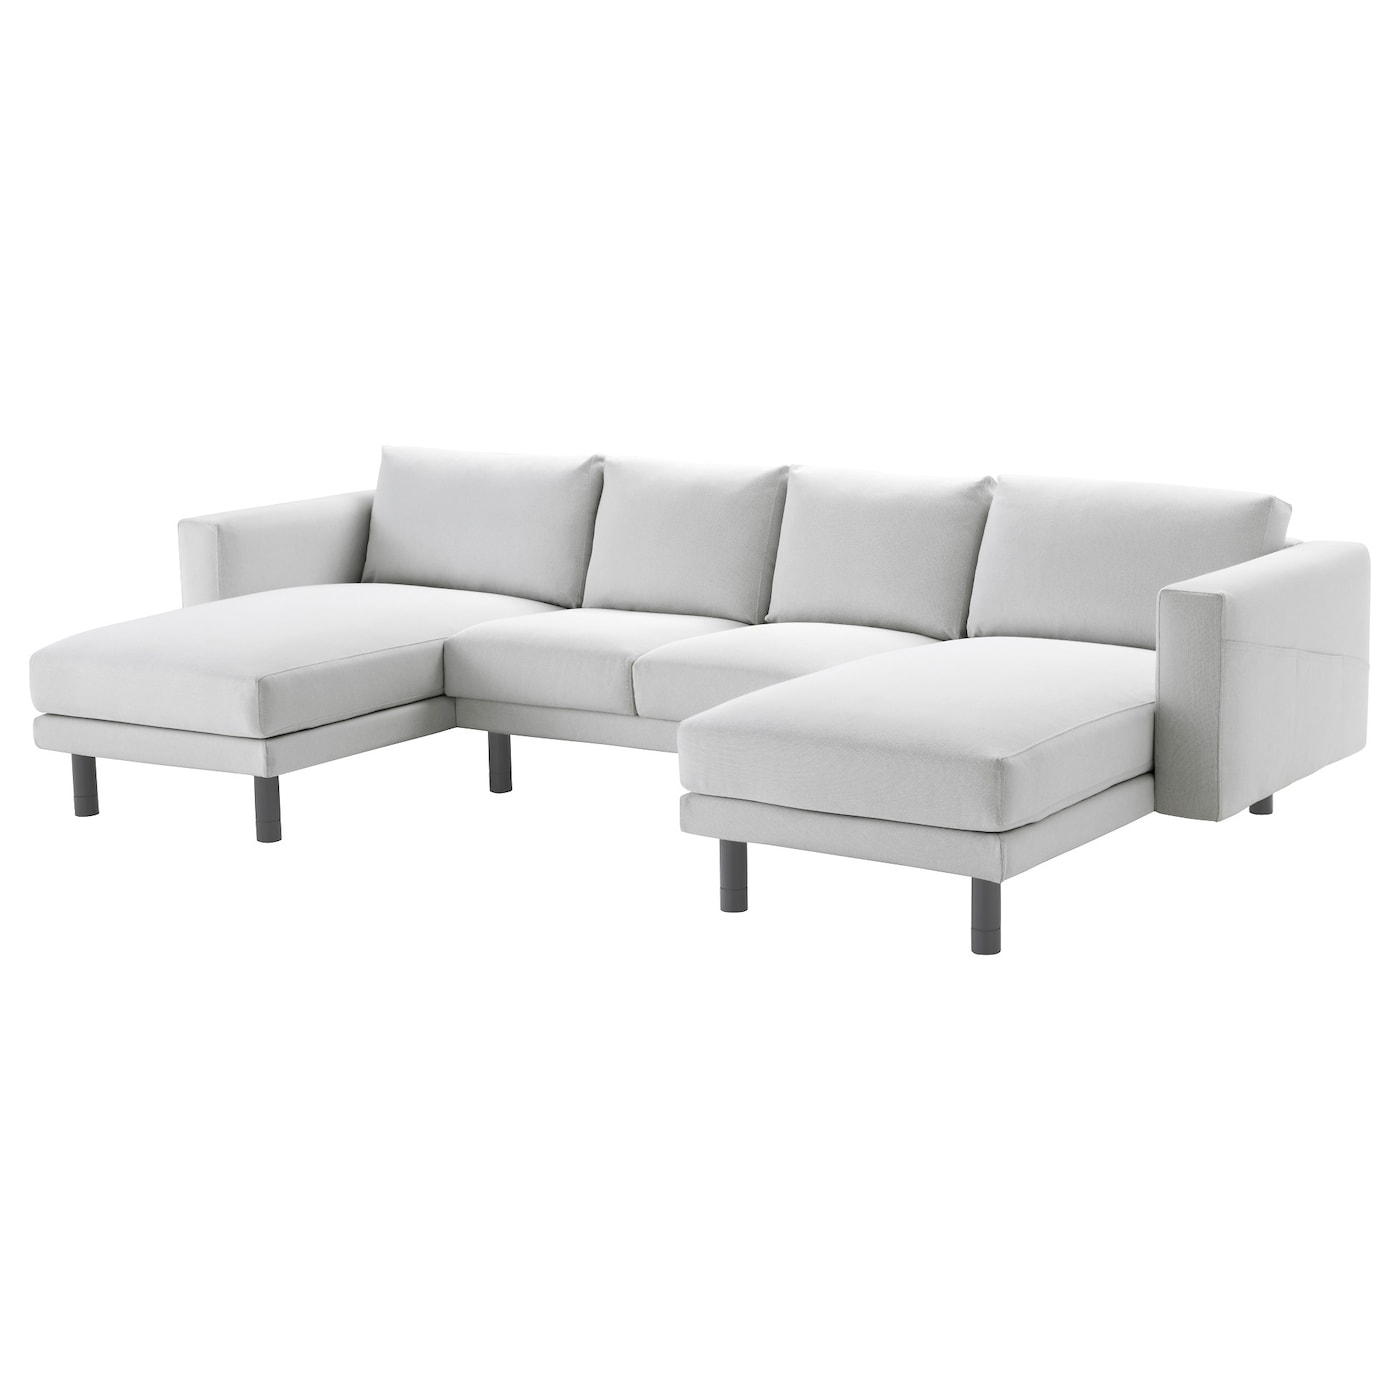 Norsborg 2 seat sofa with 2 chaise longues finnsta white for 2 seater chaise sofa